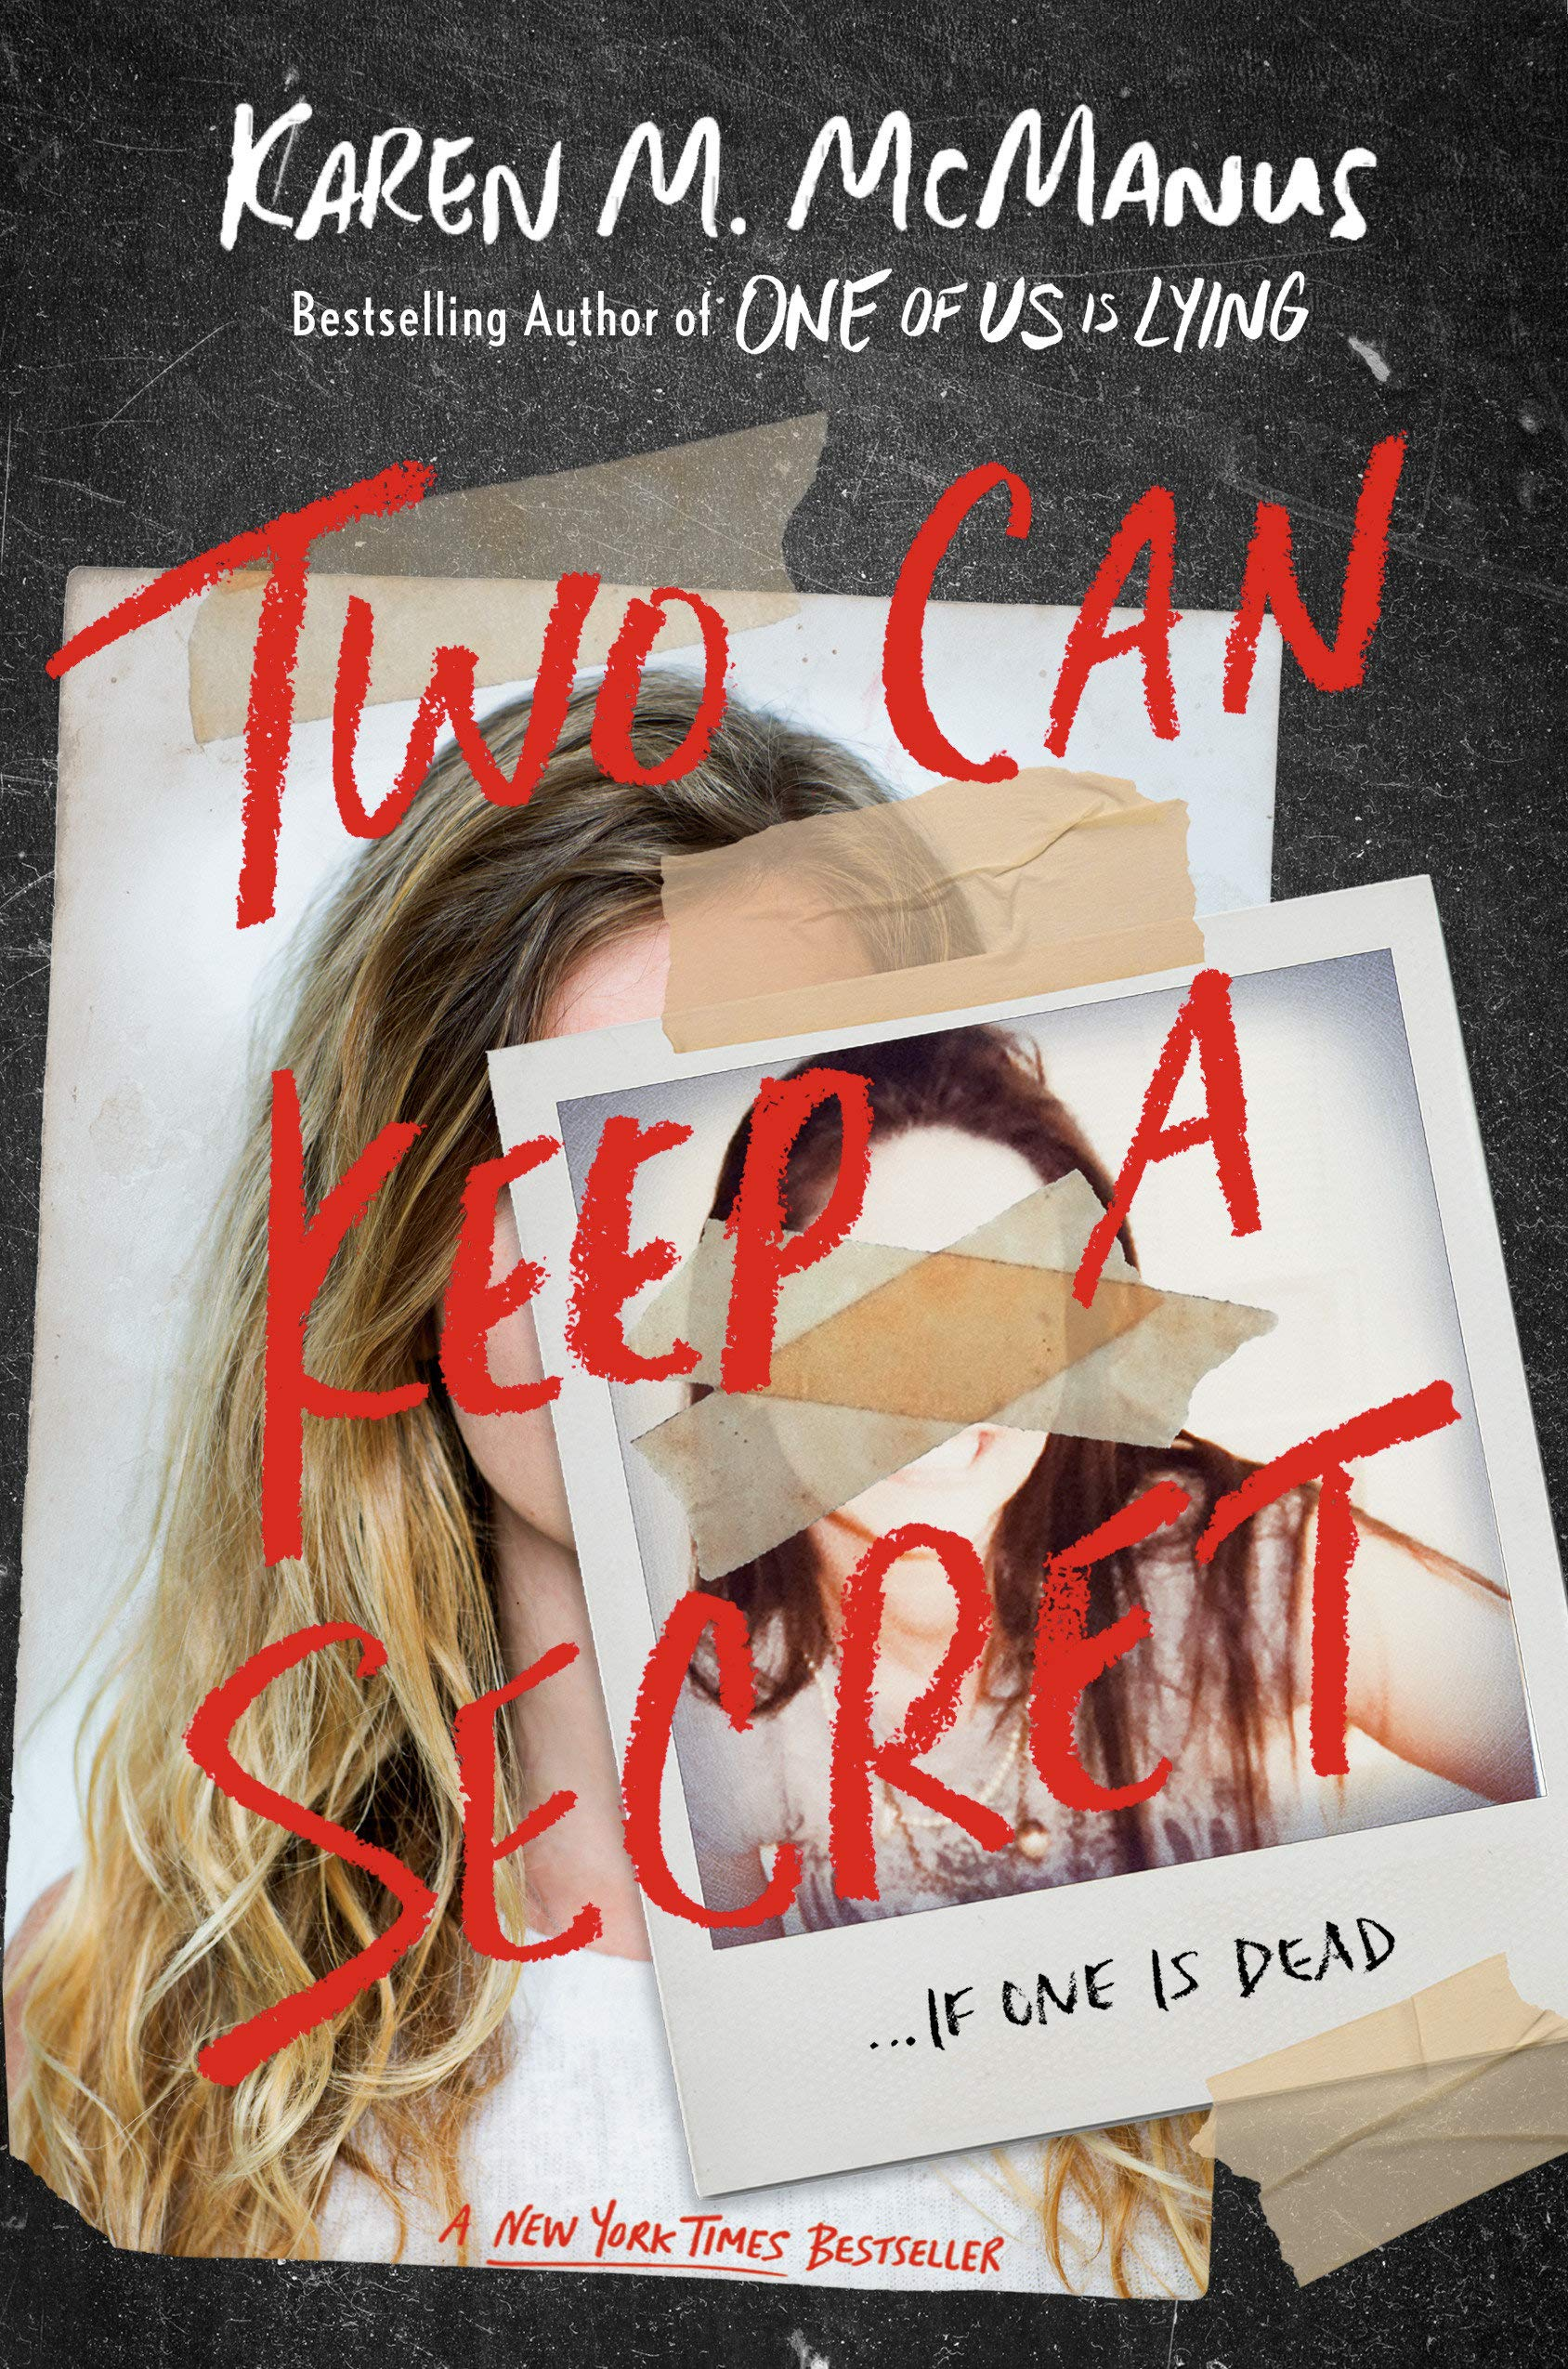 Amazon.com: Two Can Keep a Secret (9781524714727): McManus, Karen M.: Books